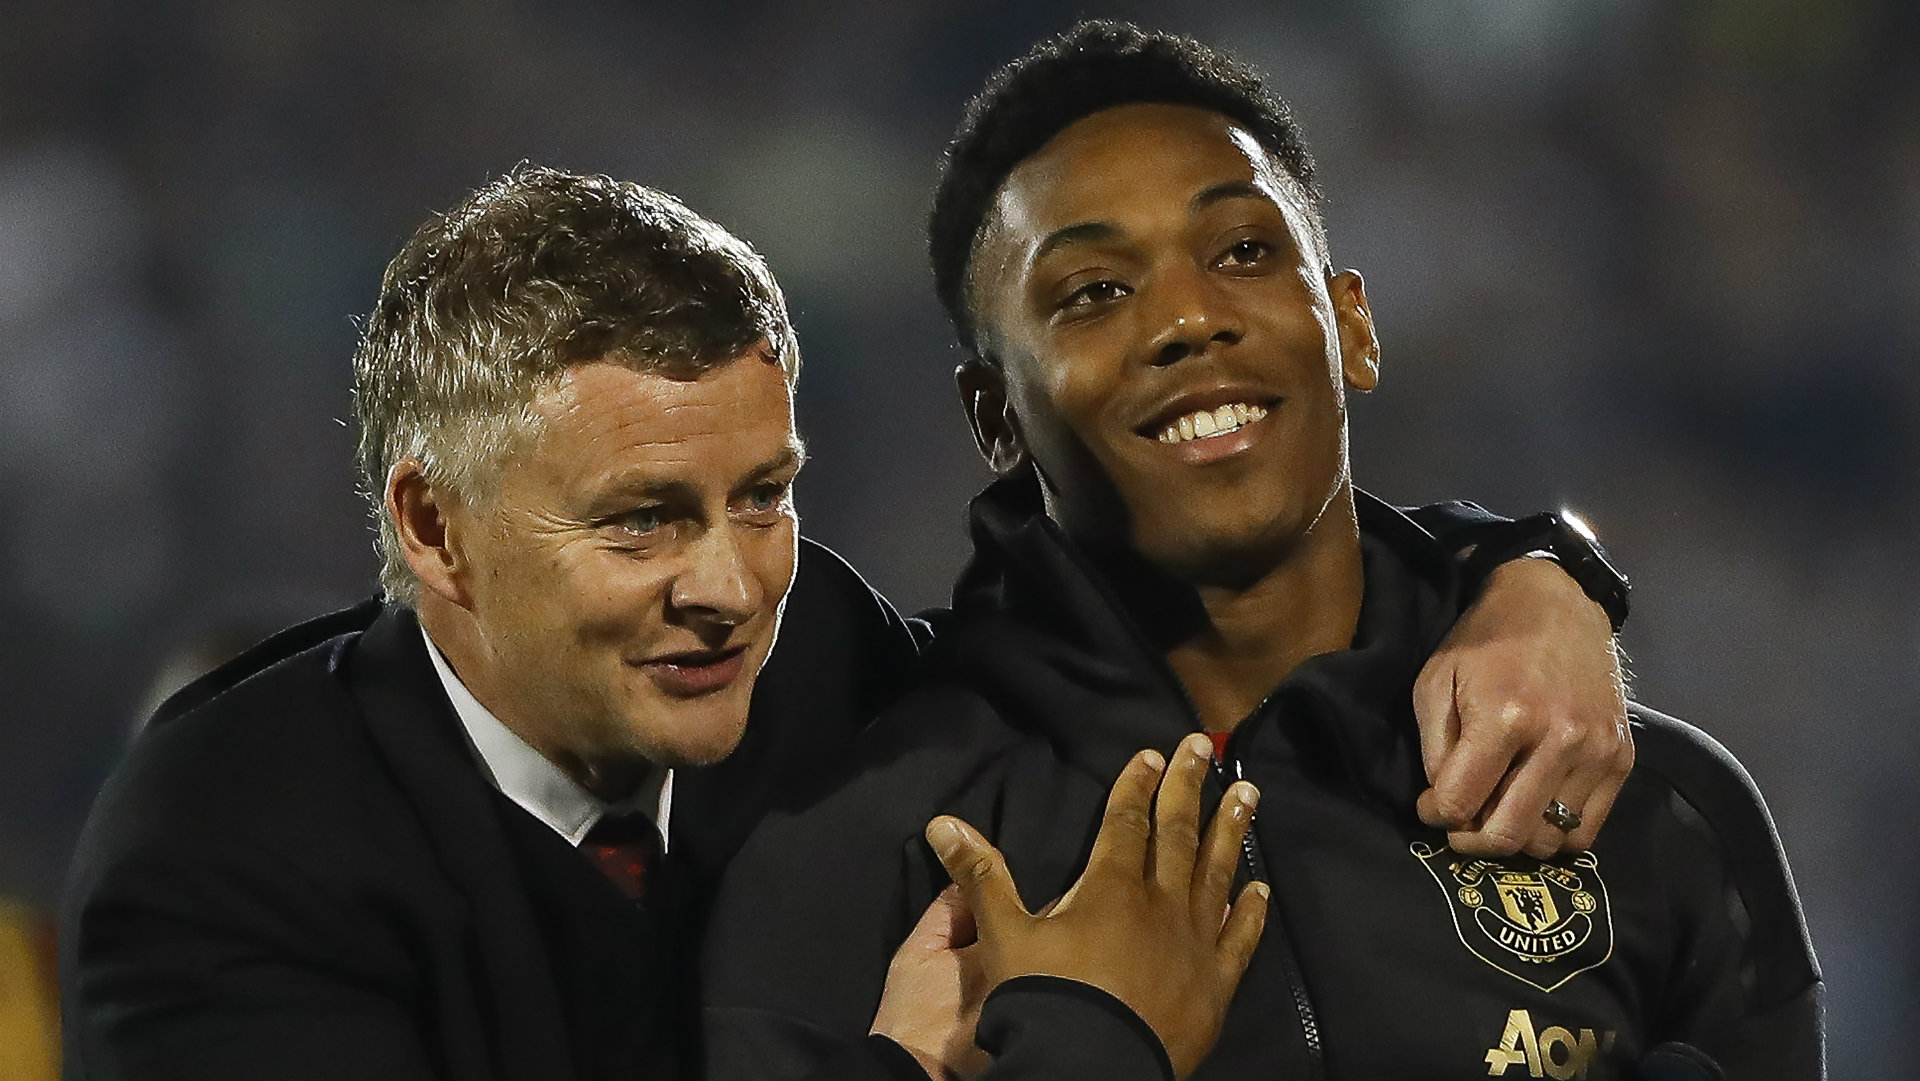 'He has matured a lot' - Solskjaer says Martial is becoming 'obsessed' with scoring goals